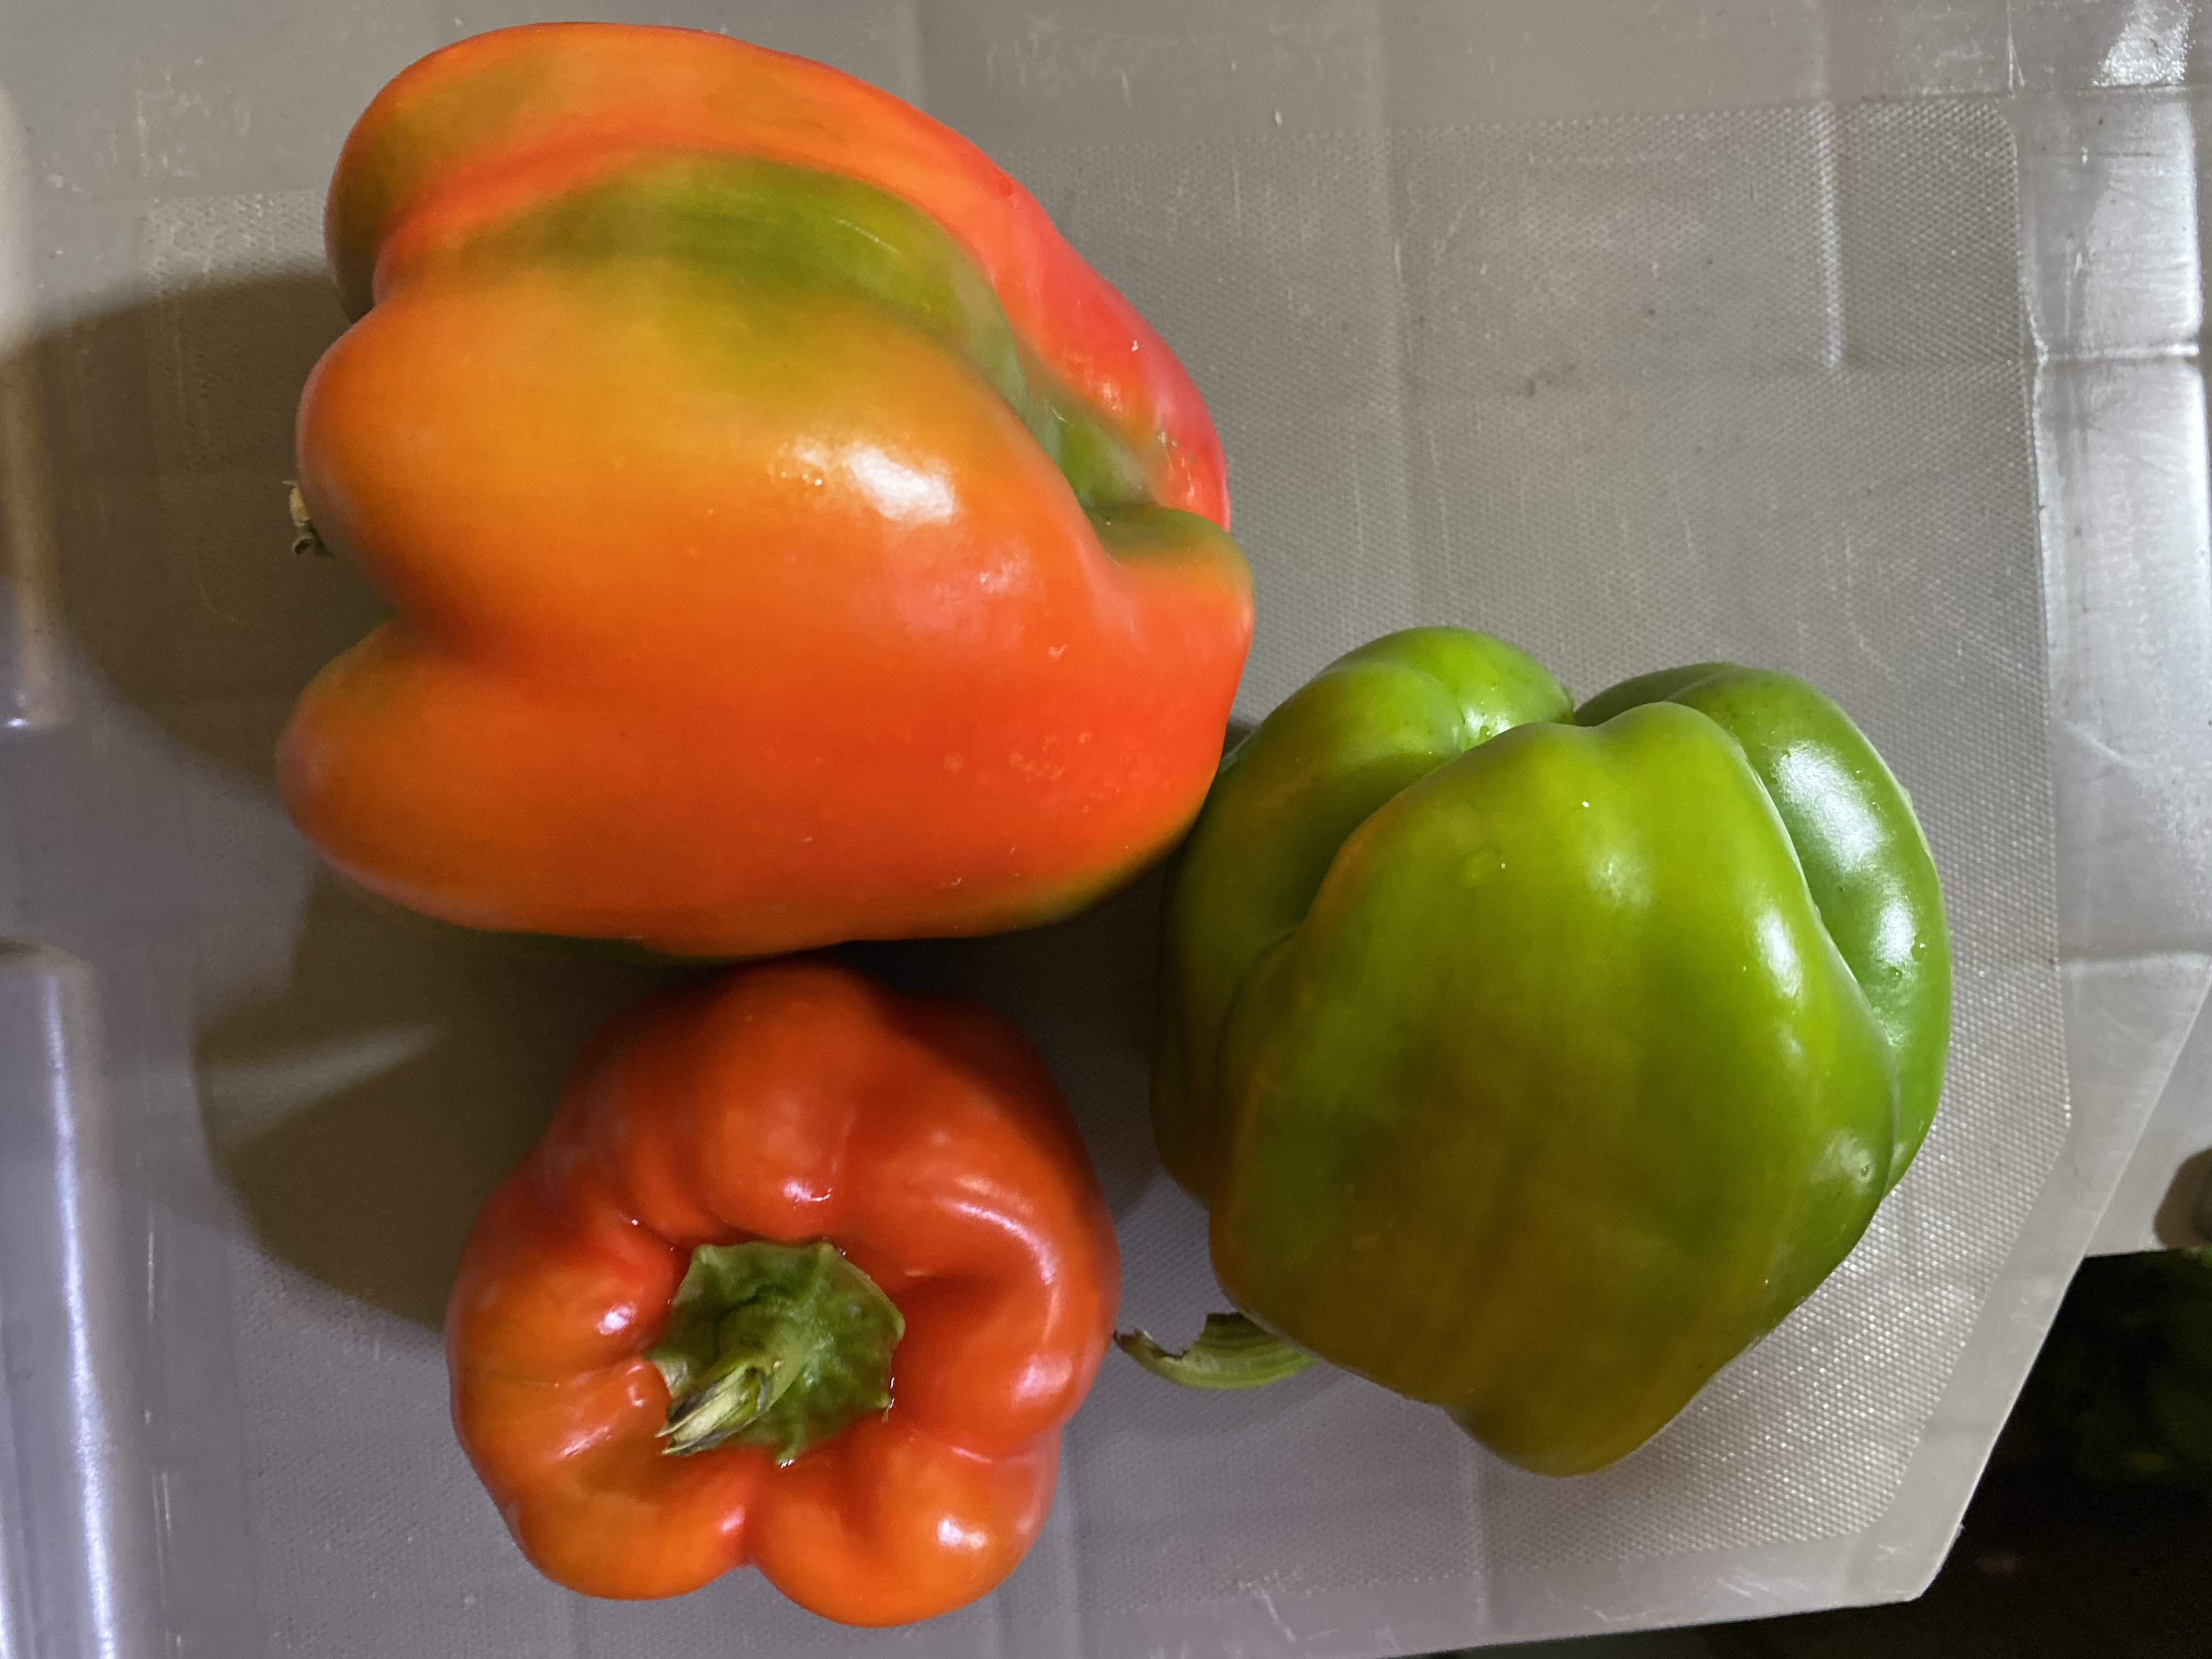 August Break and peppers!